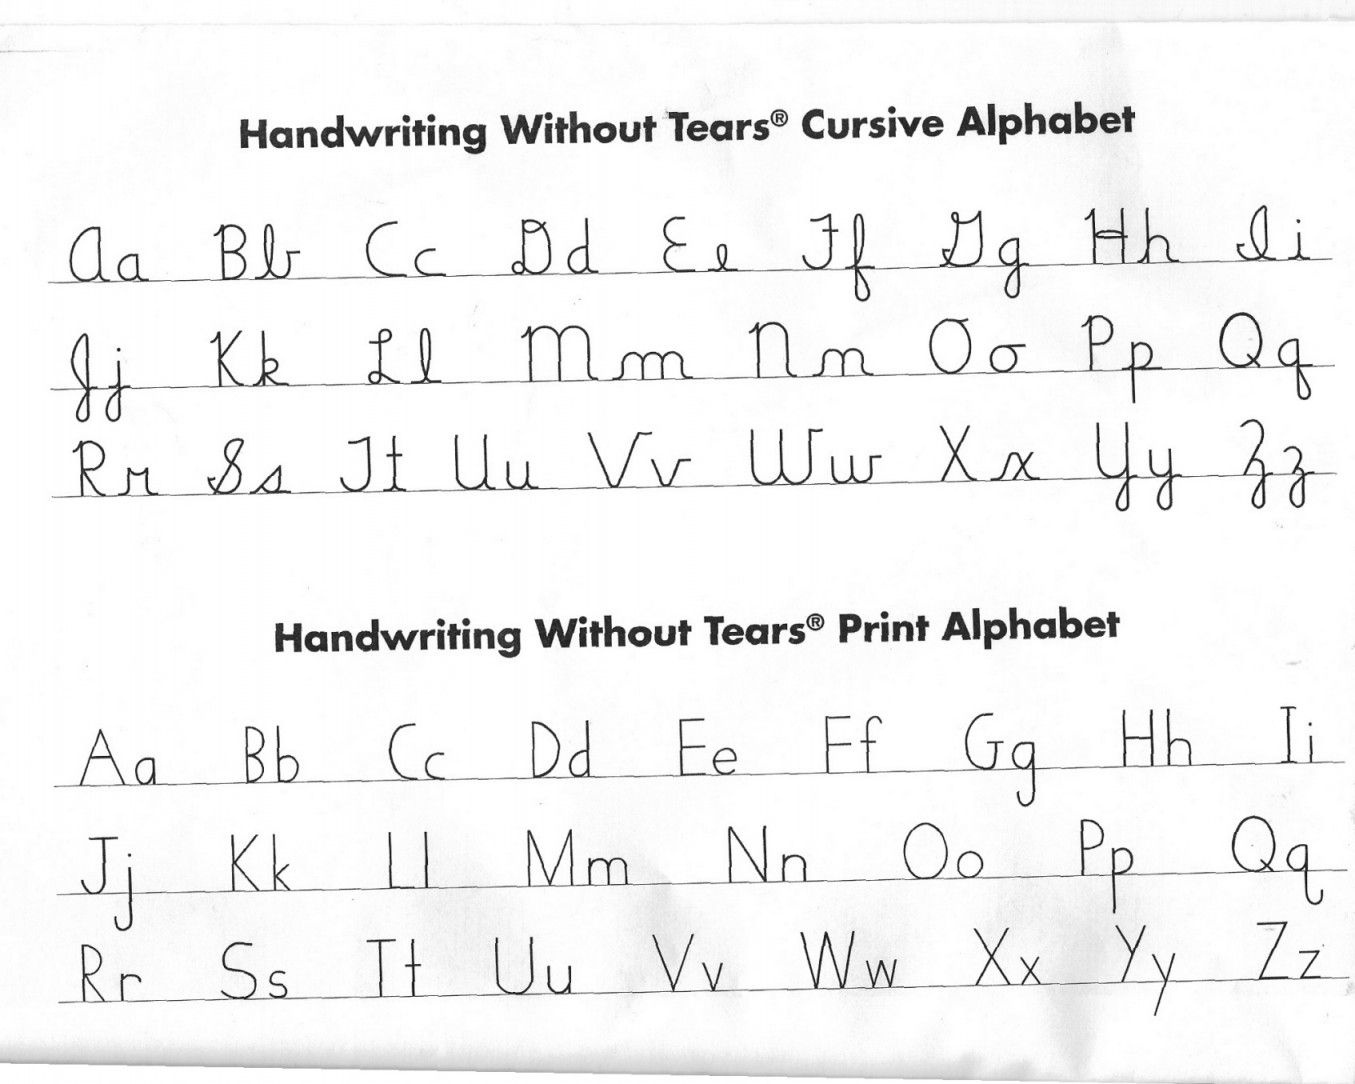 Handwriting Without Tears Worksheets   Lobo Black - Handwriting Without Tears Worksheets Free Printable